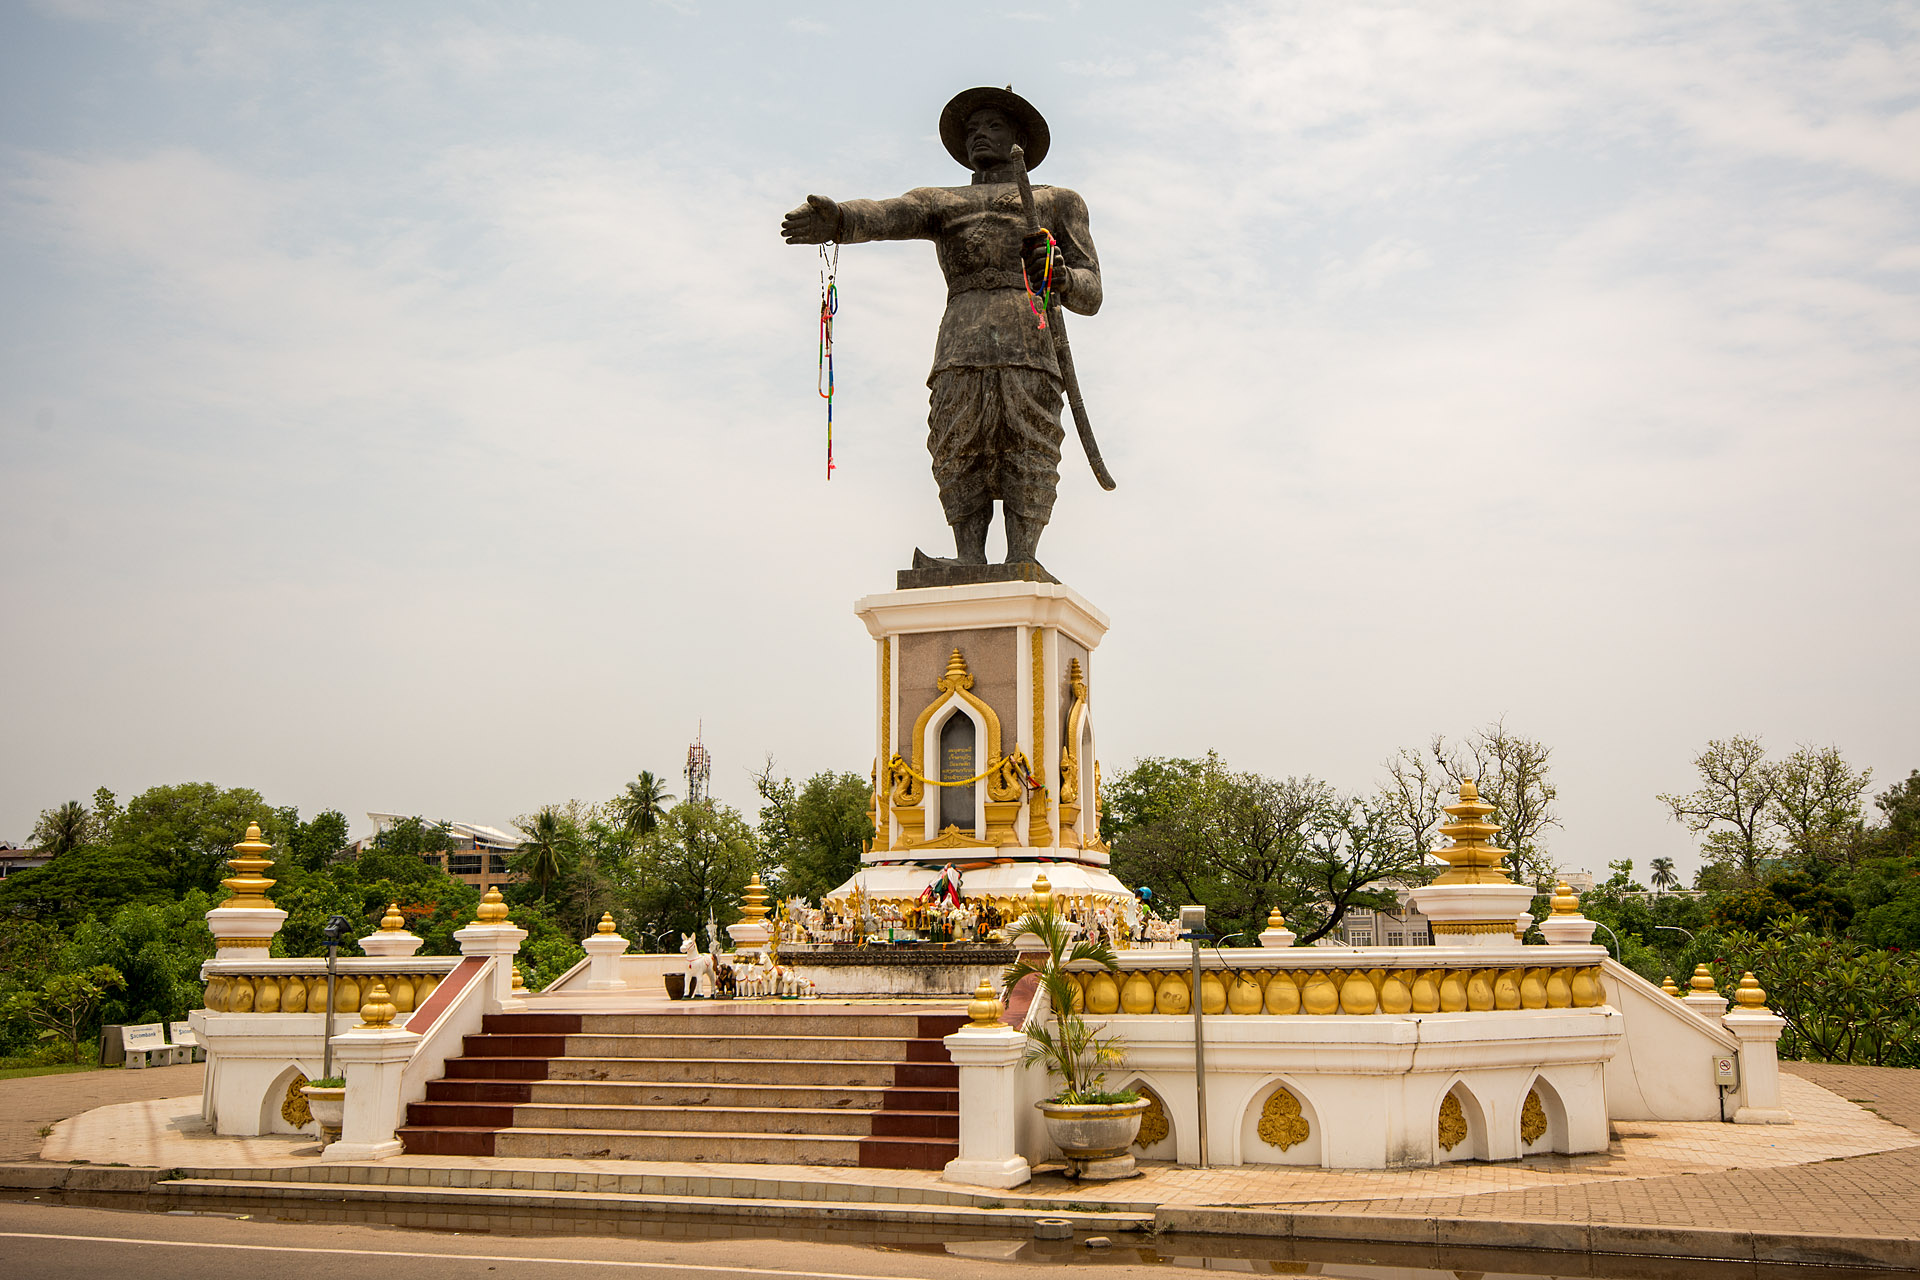 King Anouvong statue (Chao Anouvong Park)